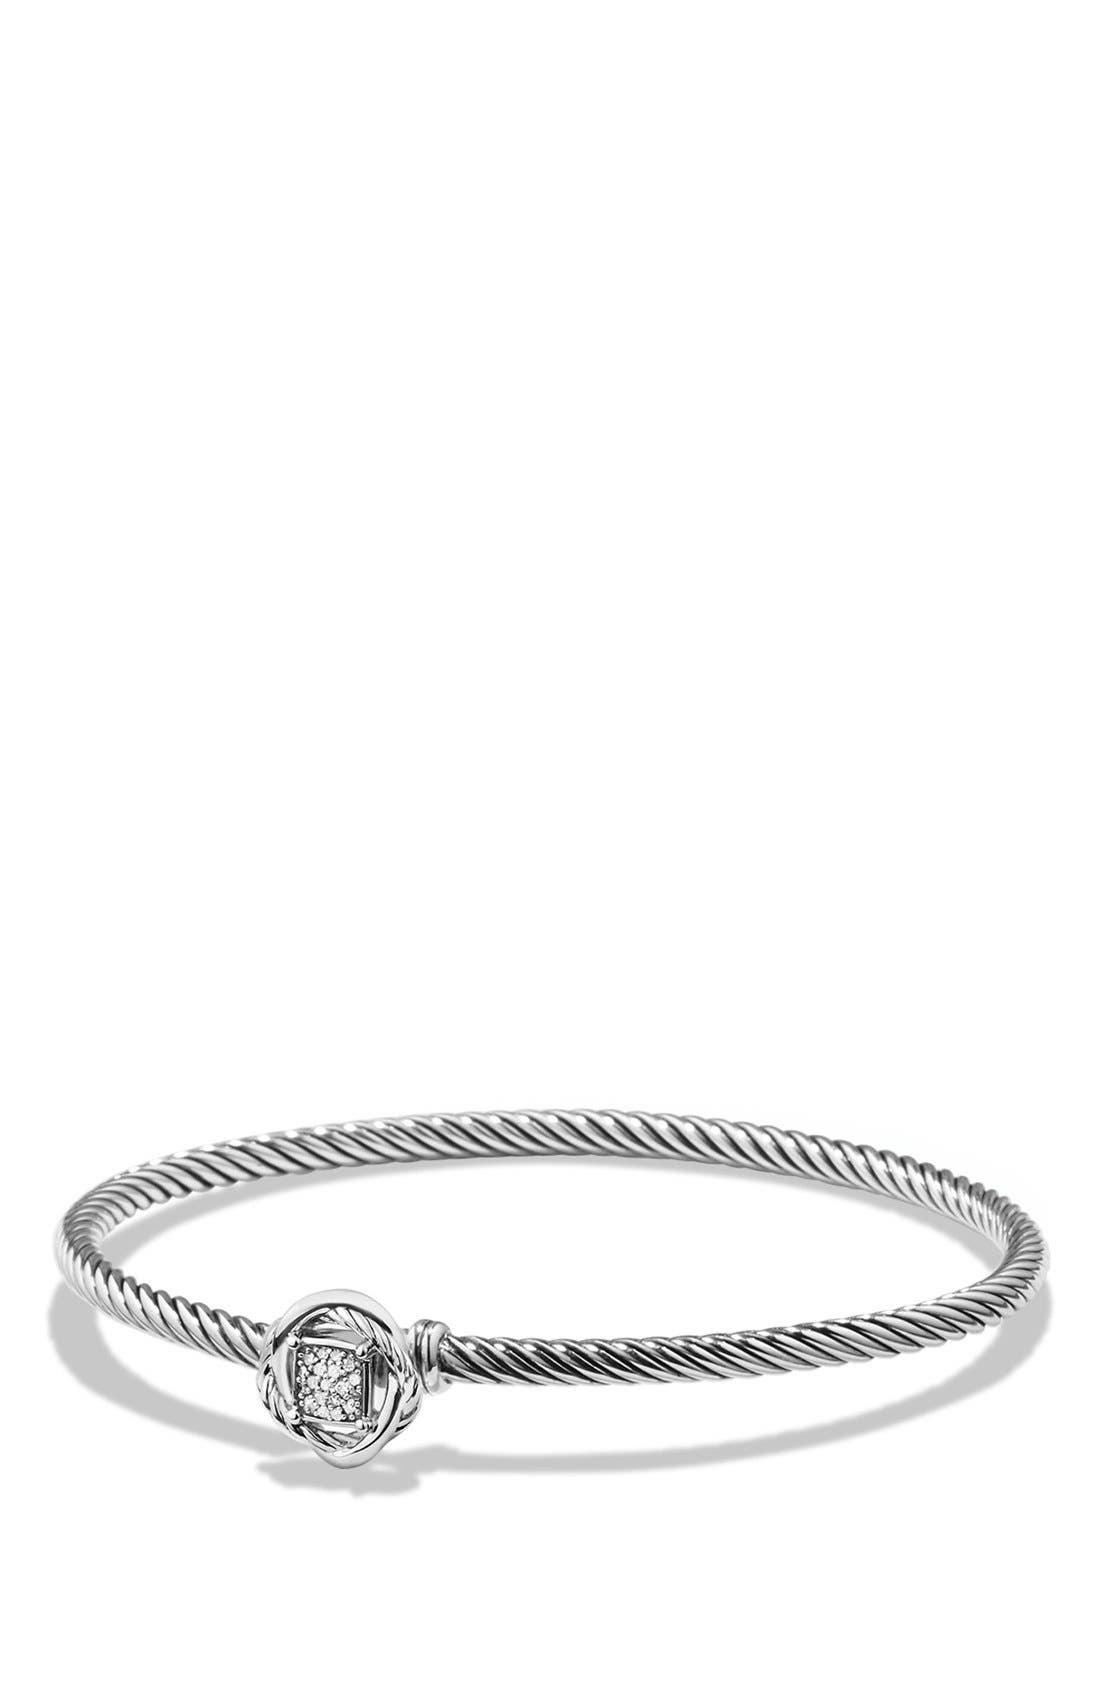 'Infinity' Bracelet with Diamonds,                         Main,                         color, Diamond